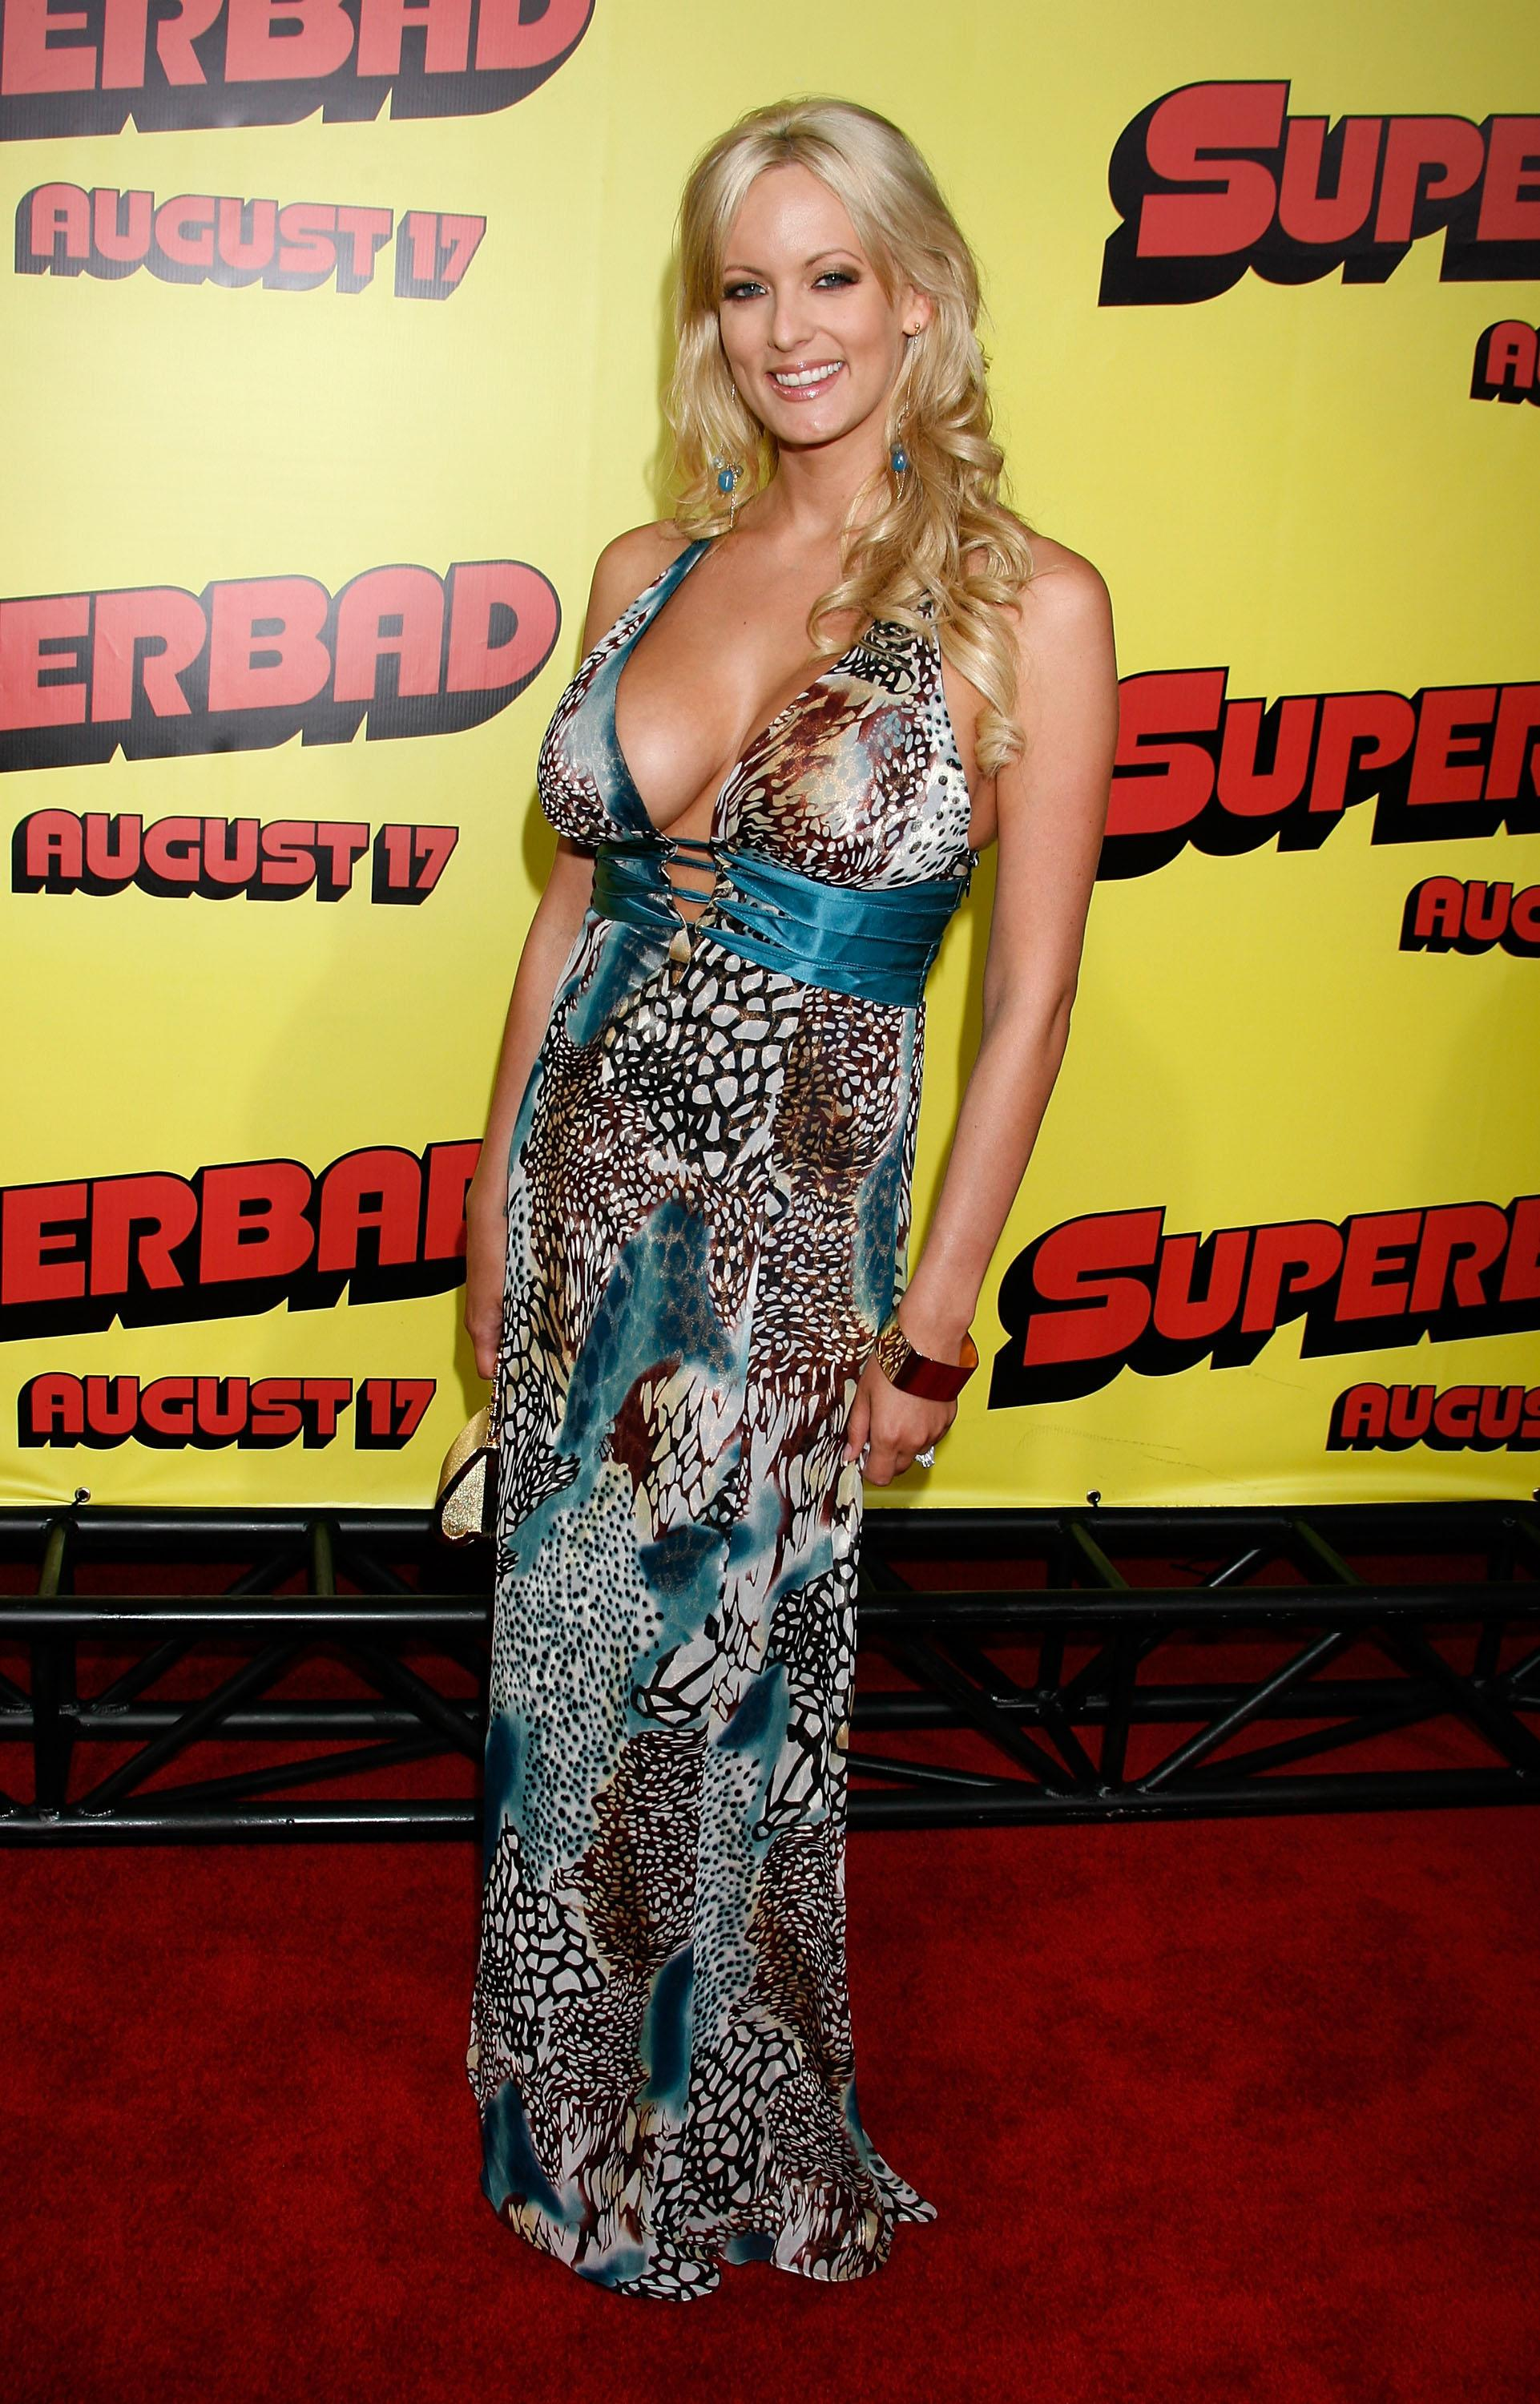 HOLLYWOOD - AUGUST 13: Actress Stormy Daniels attends the premiere of Superbad at Grauman's Chinese Theatre on August 13, 2007 in Hollywood, California. (Photo by Jeffrey Mayer/WireImage) *** Local Caption ***